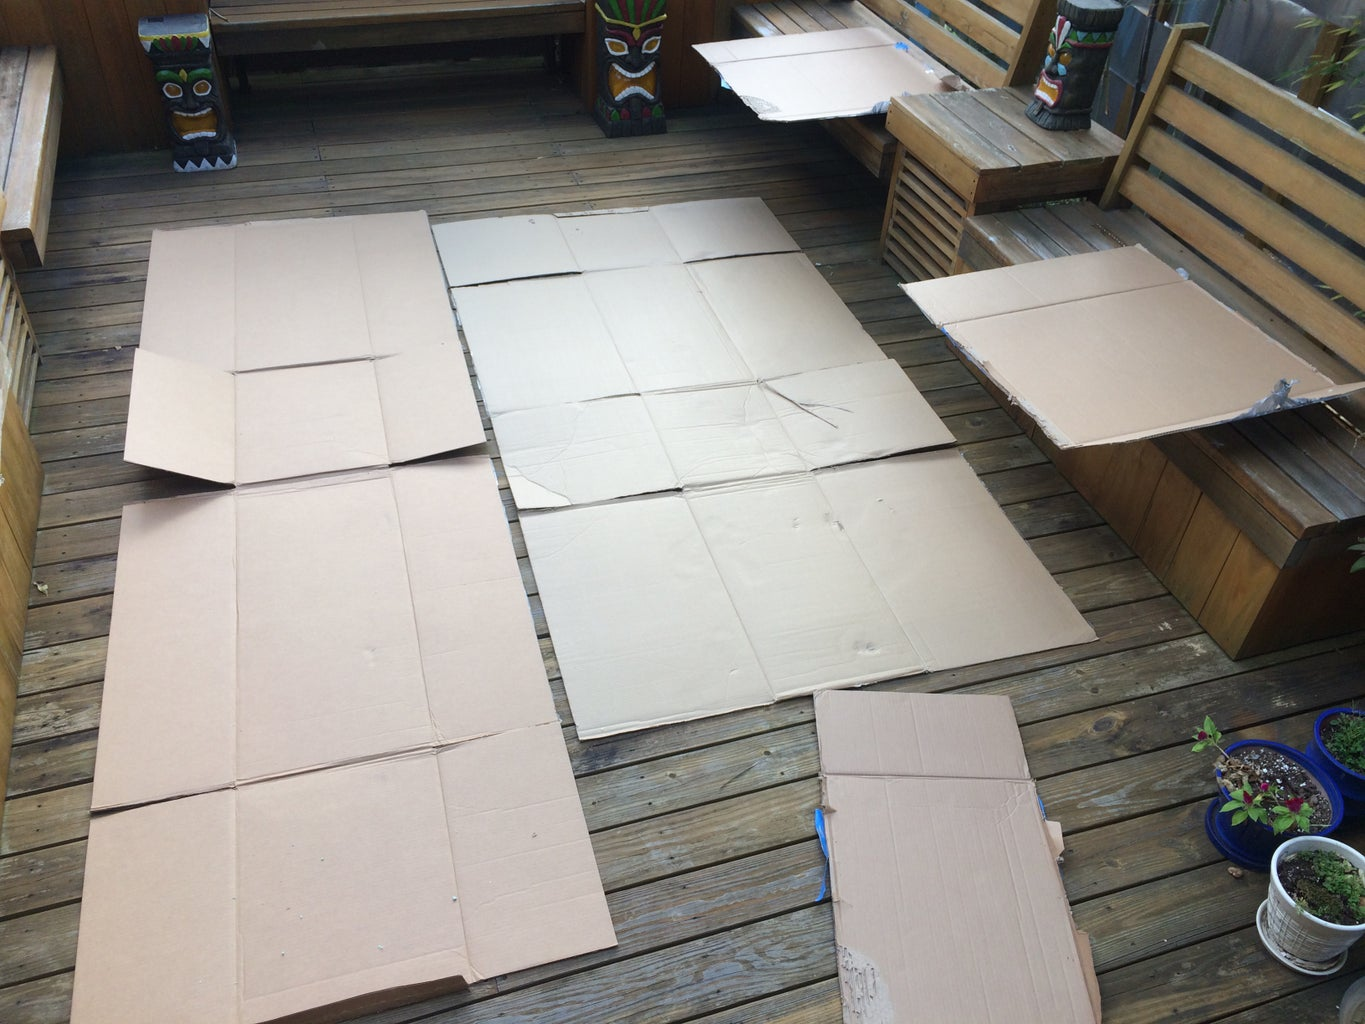 Carefully Disassemble Your Cardboard Boxes.